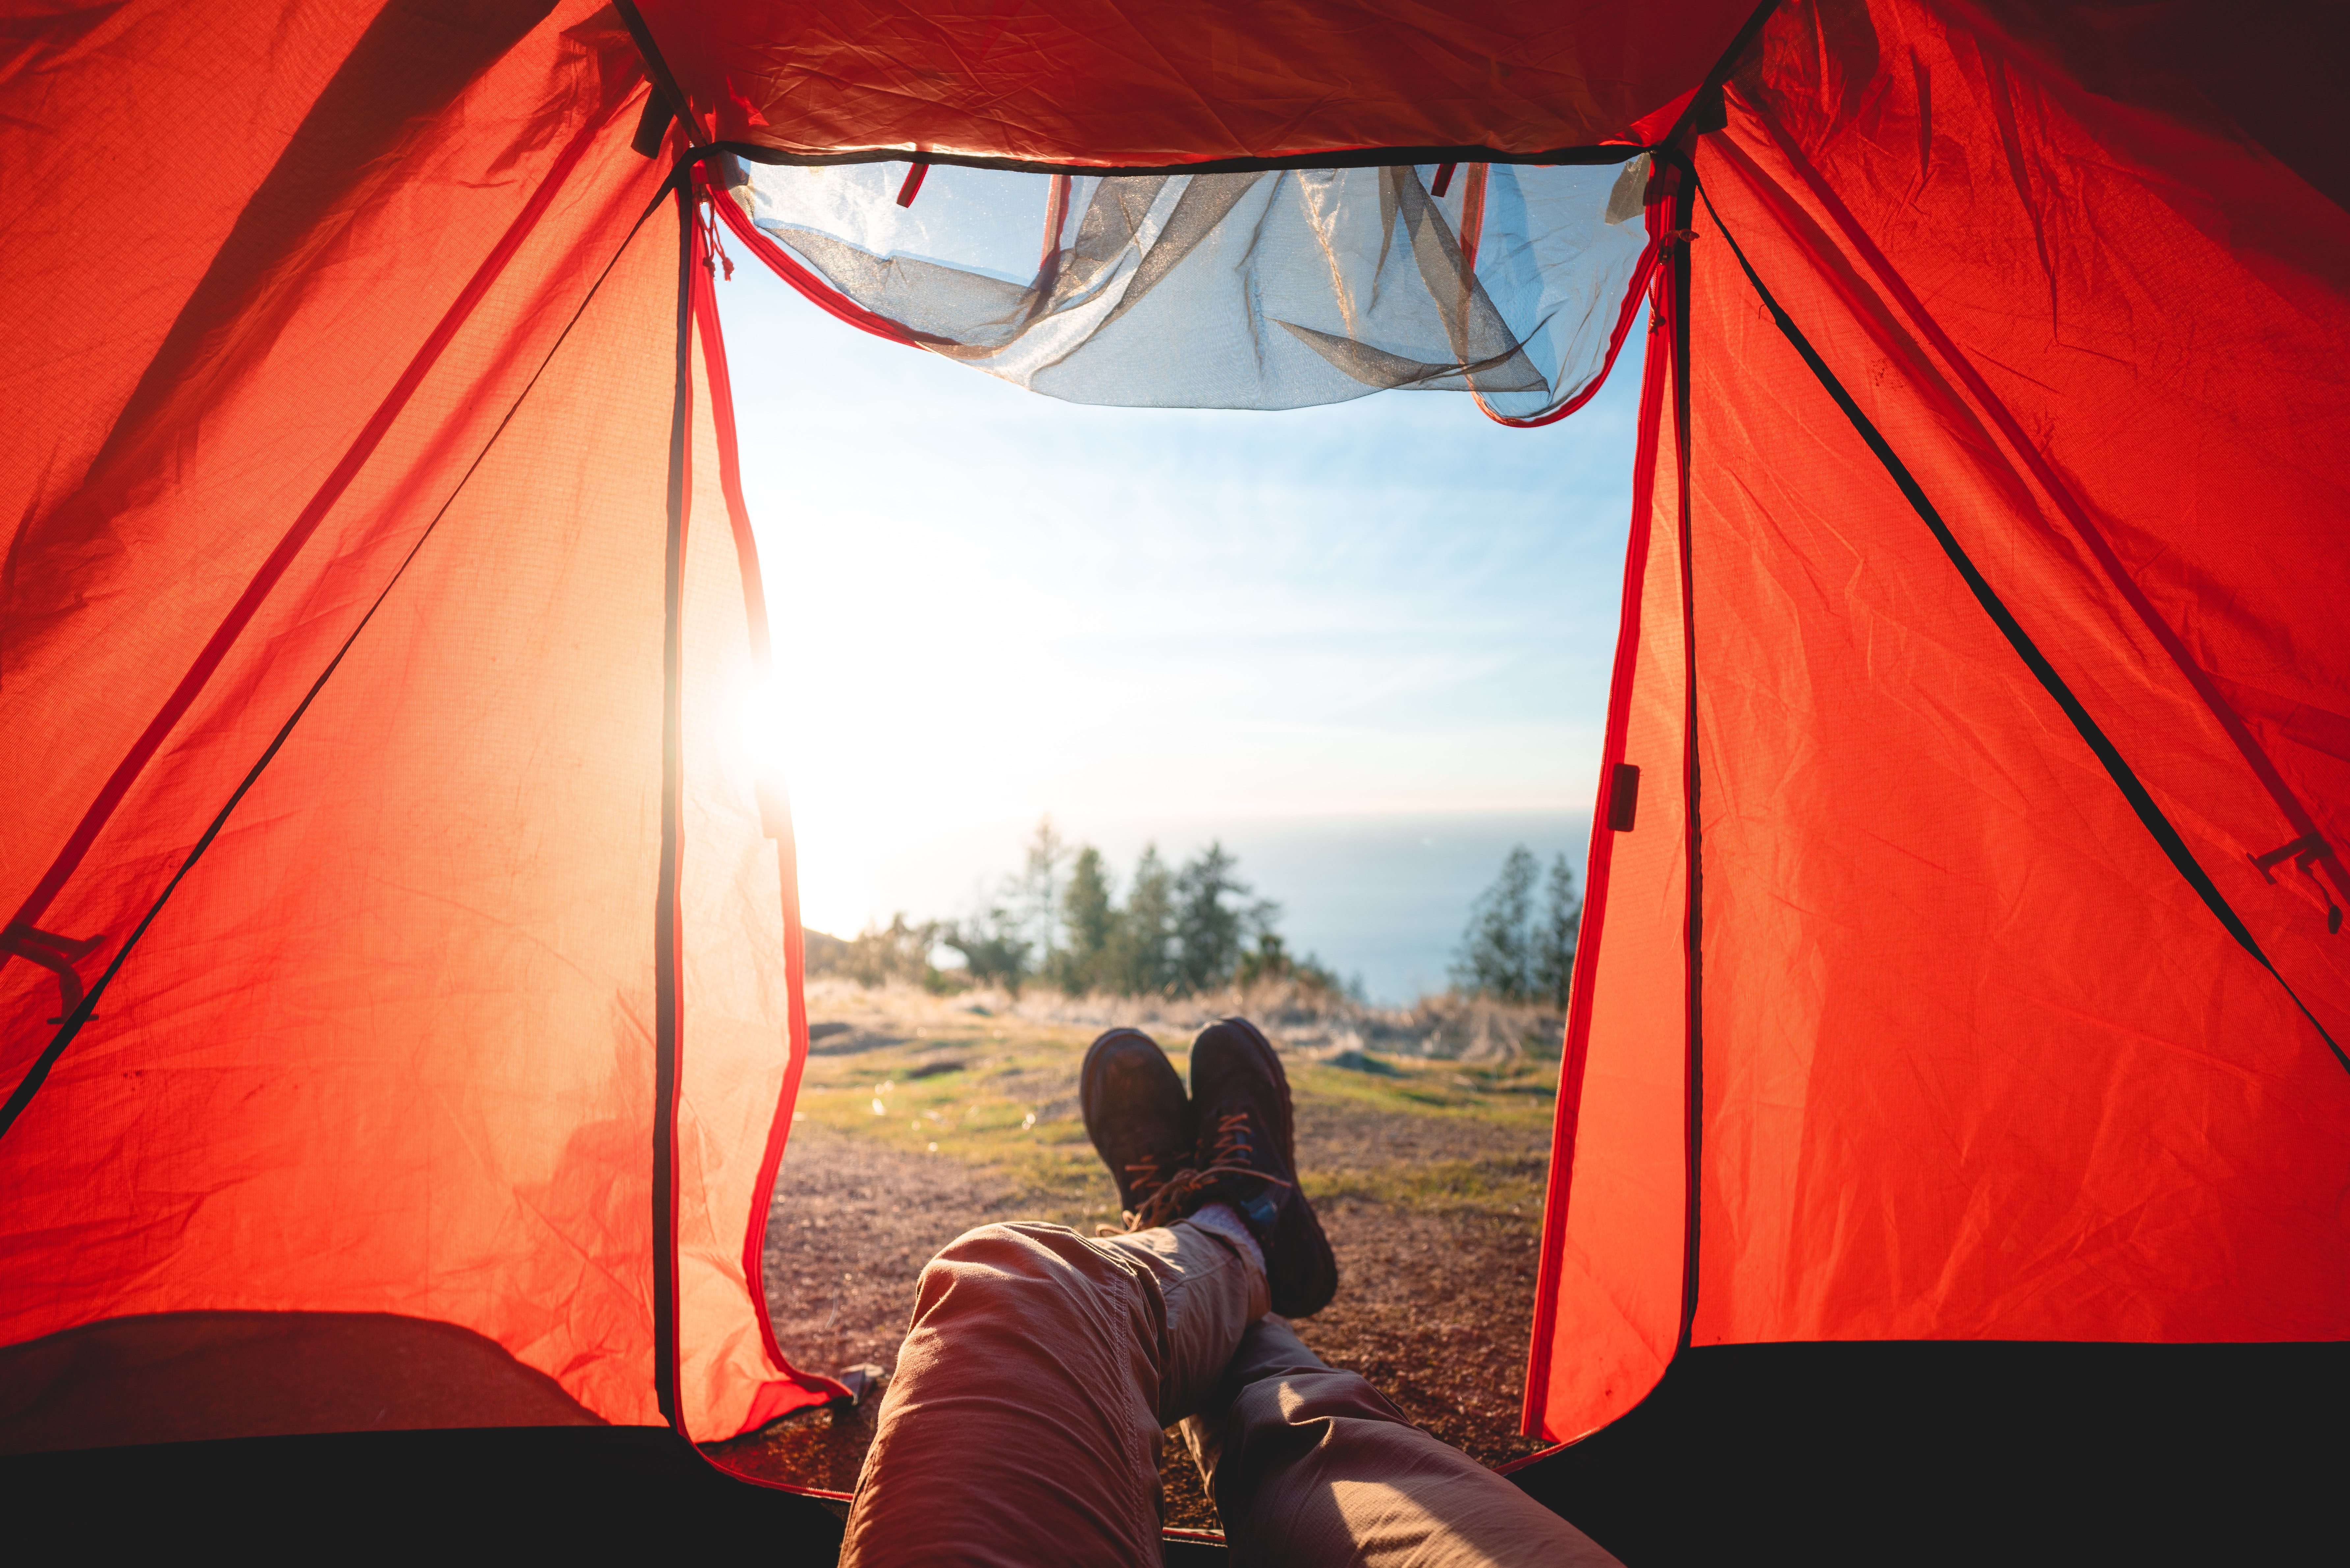 Man's legs hanging out of tent with lake view